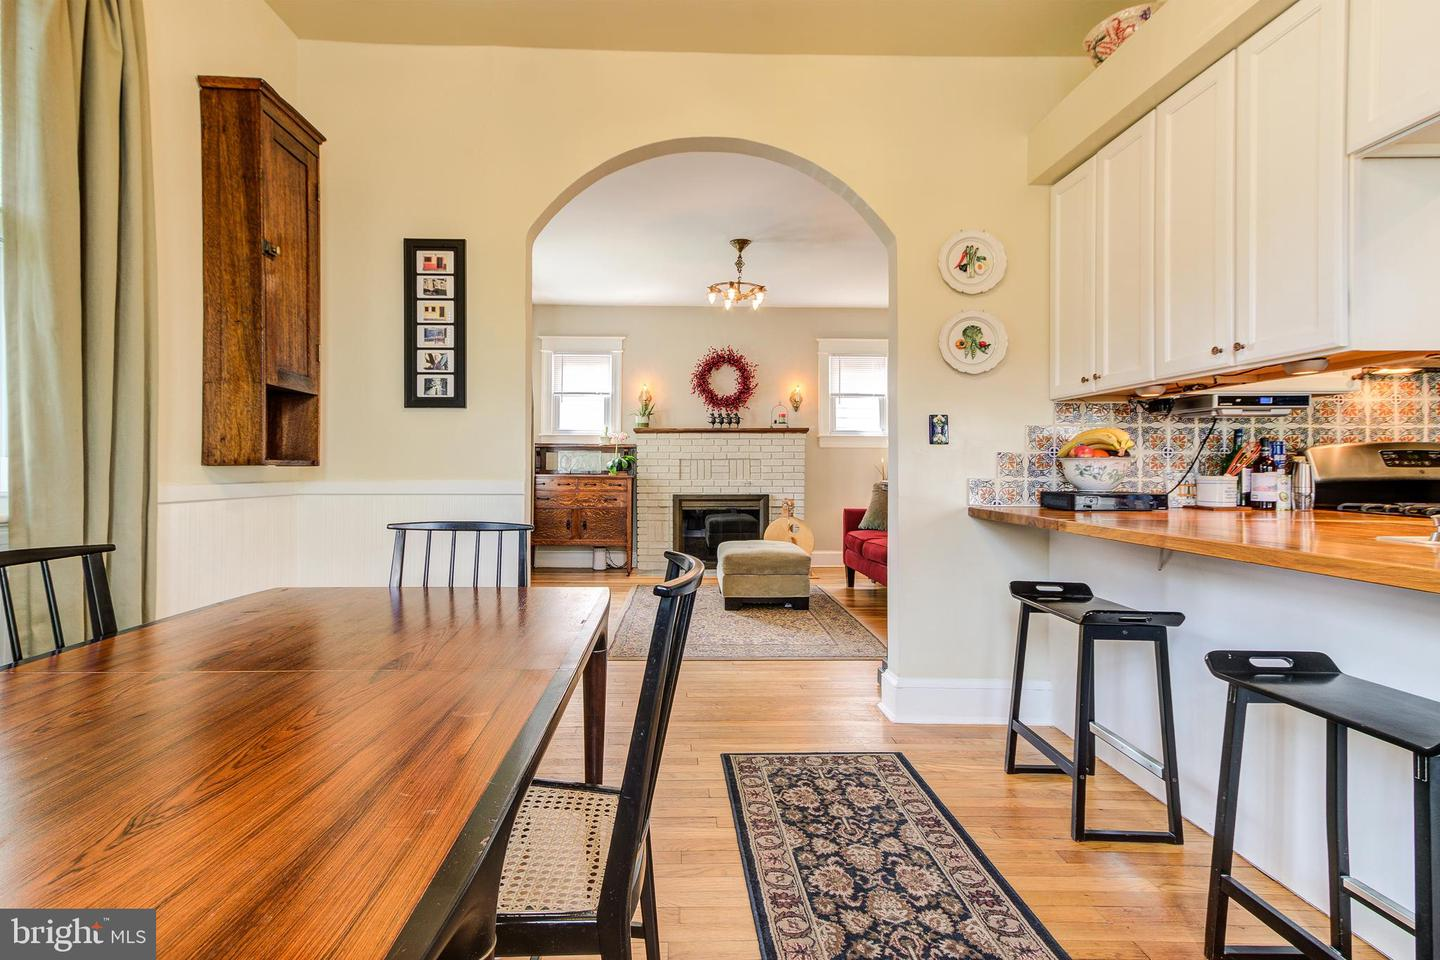 708 CHANEY DR, TAKOMA PARK, Maryland 20912, 3 Bedrooms Bedrooms, ,2 BathroomsBathrooms,Single Family,For Sale,708 CHANEY DR,MDMC742218